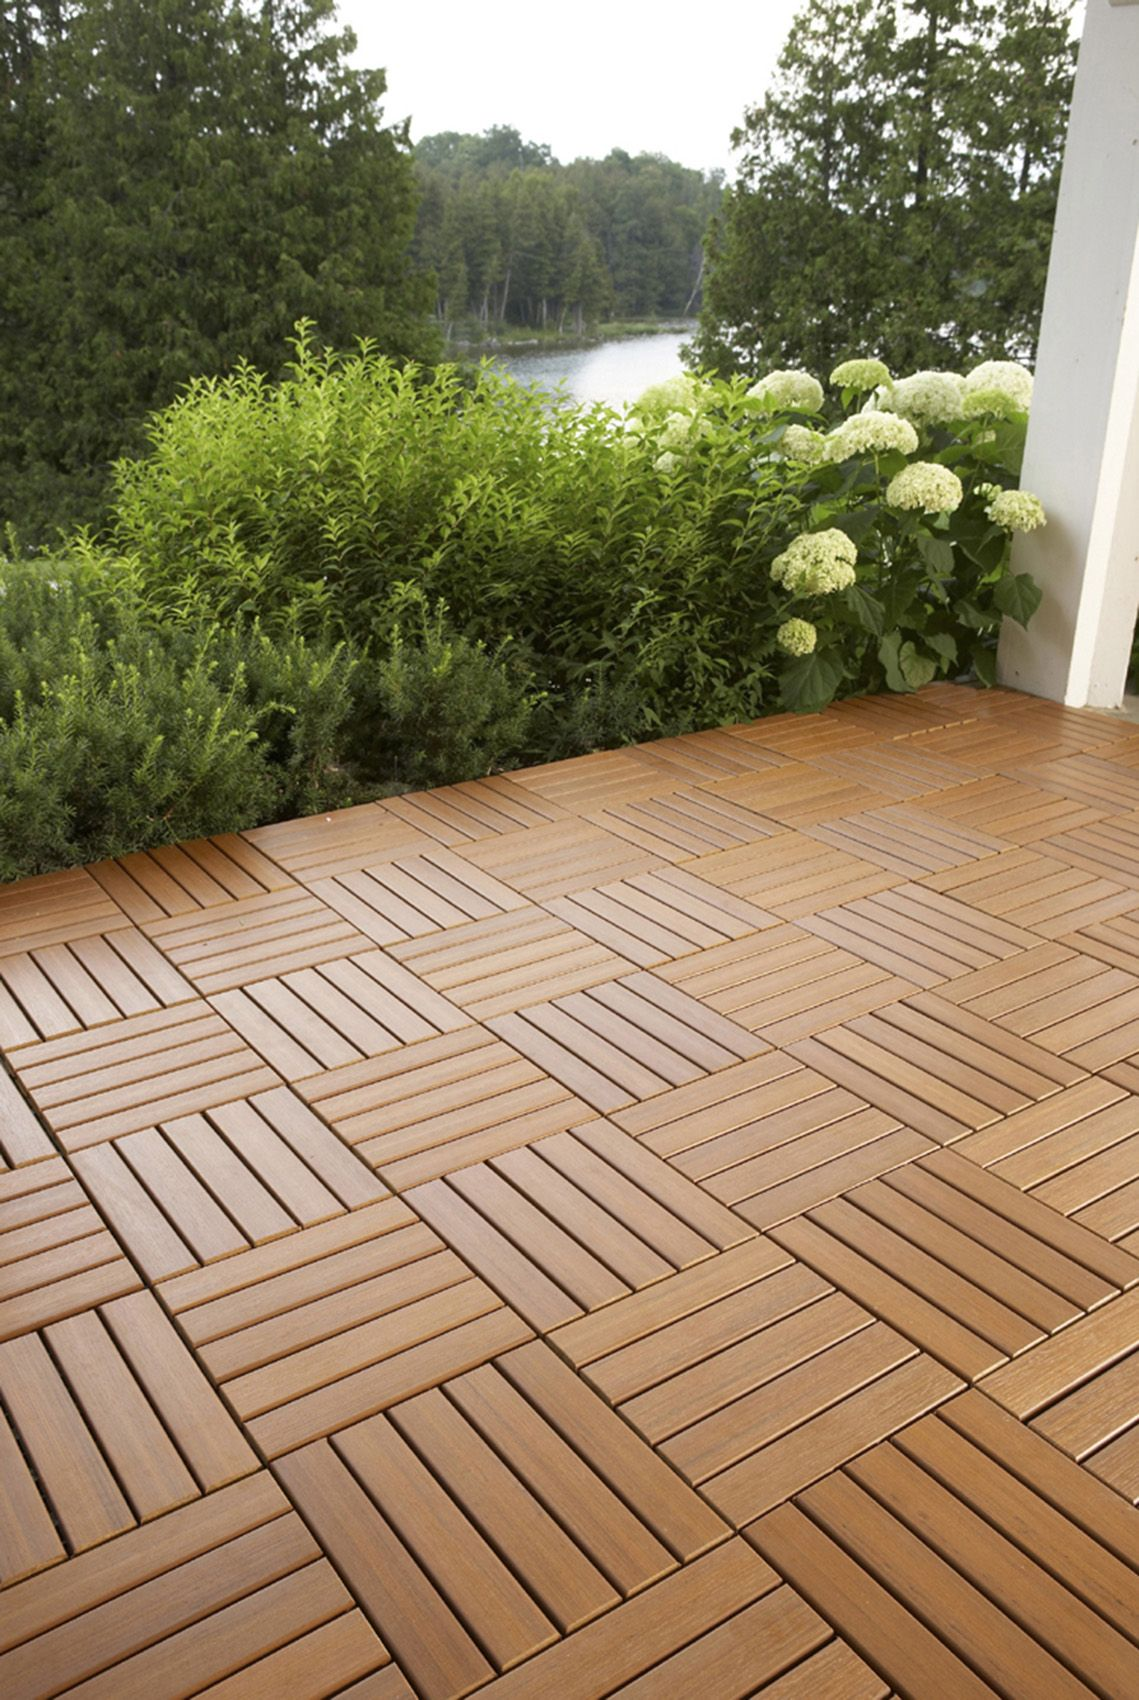 Builddirect Kontiki Interlocking Deck Tiles Engineered Polymer